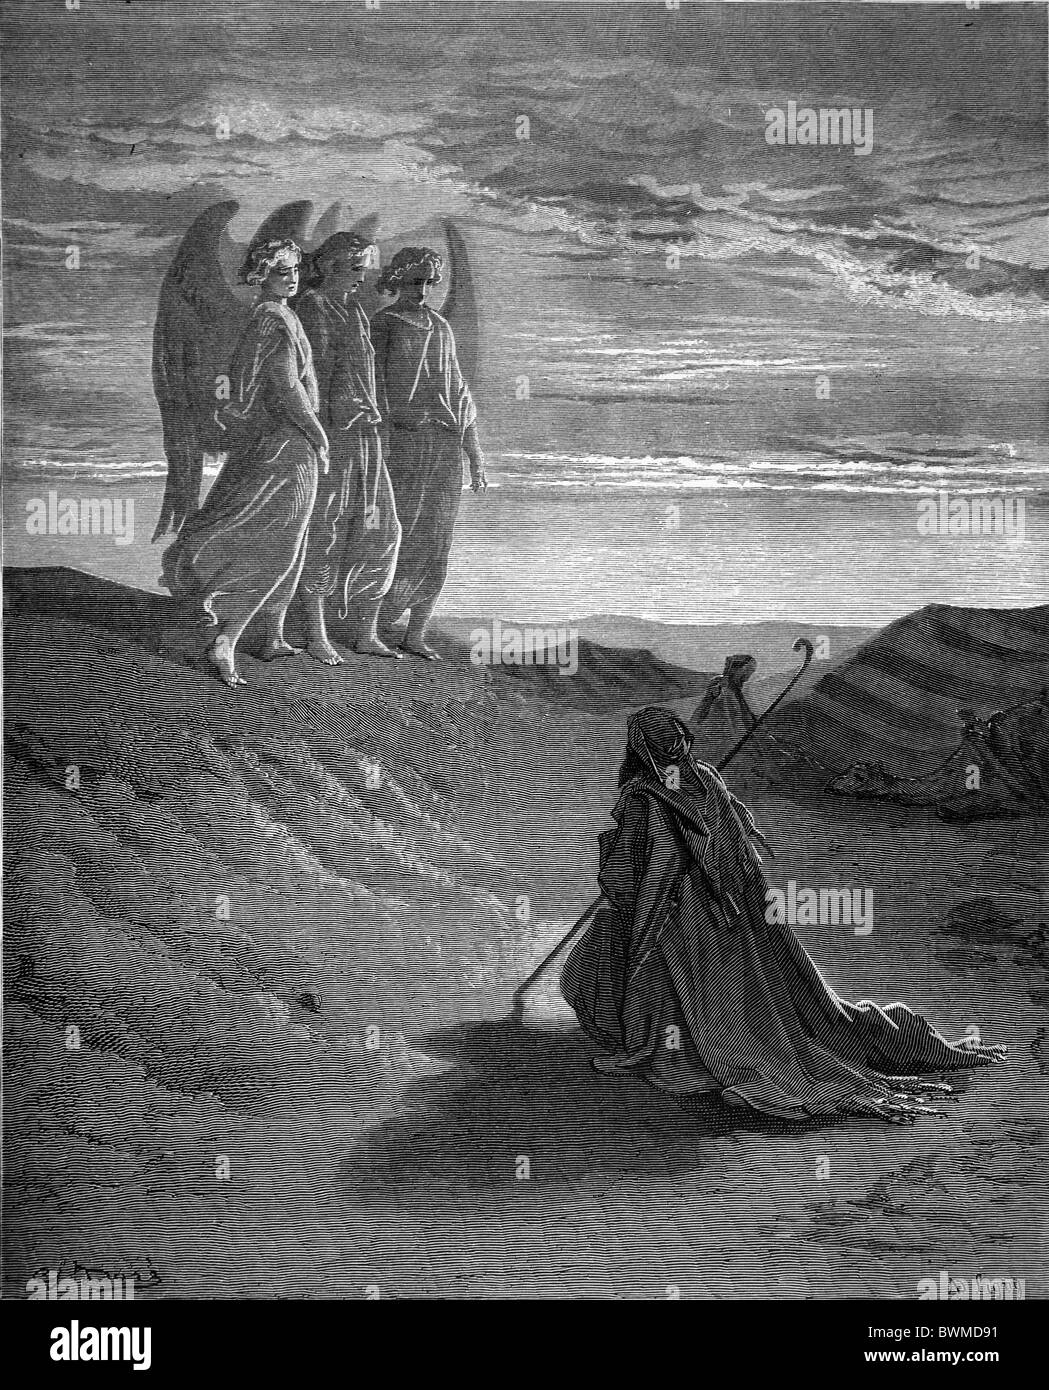 Gustave Doré; Abraham and the Three Angels; Black and White Engraving - Stock Image